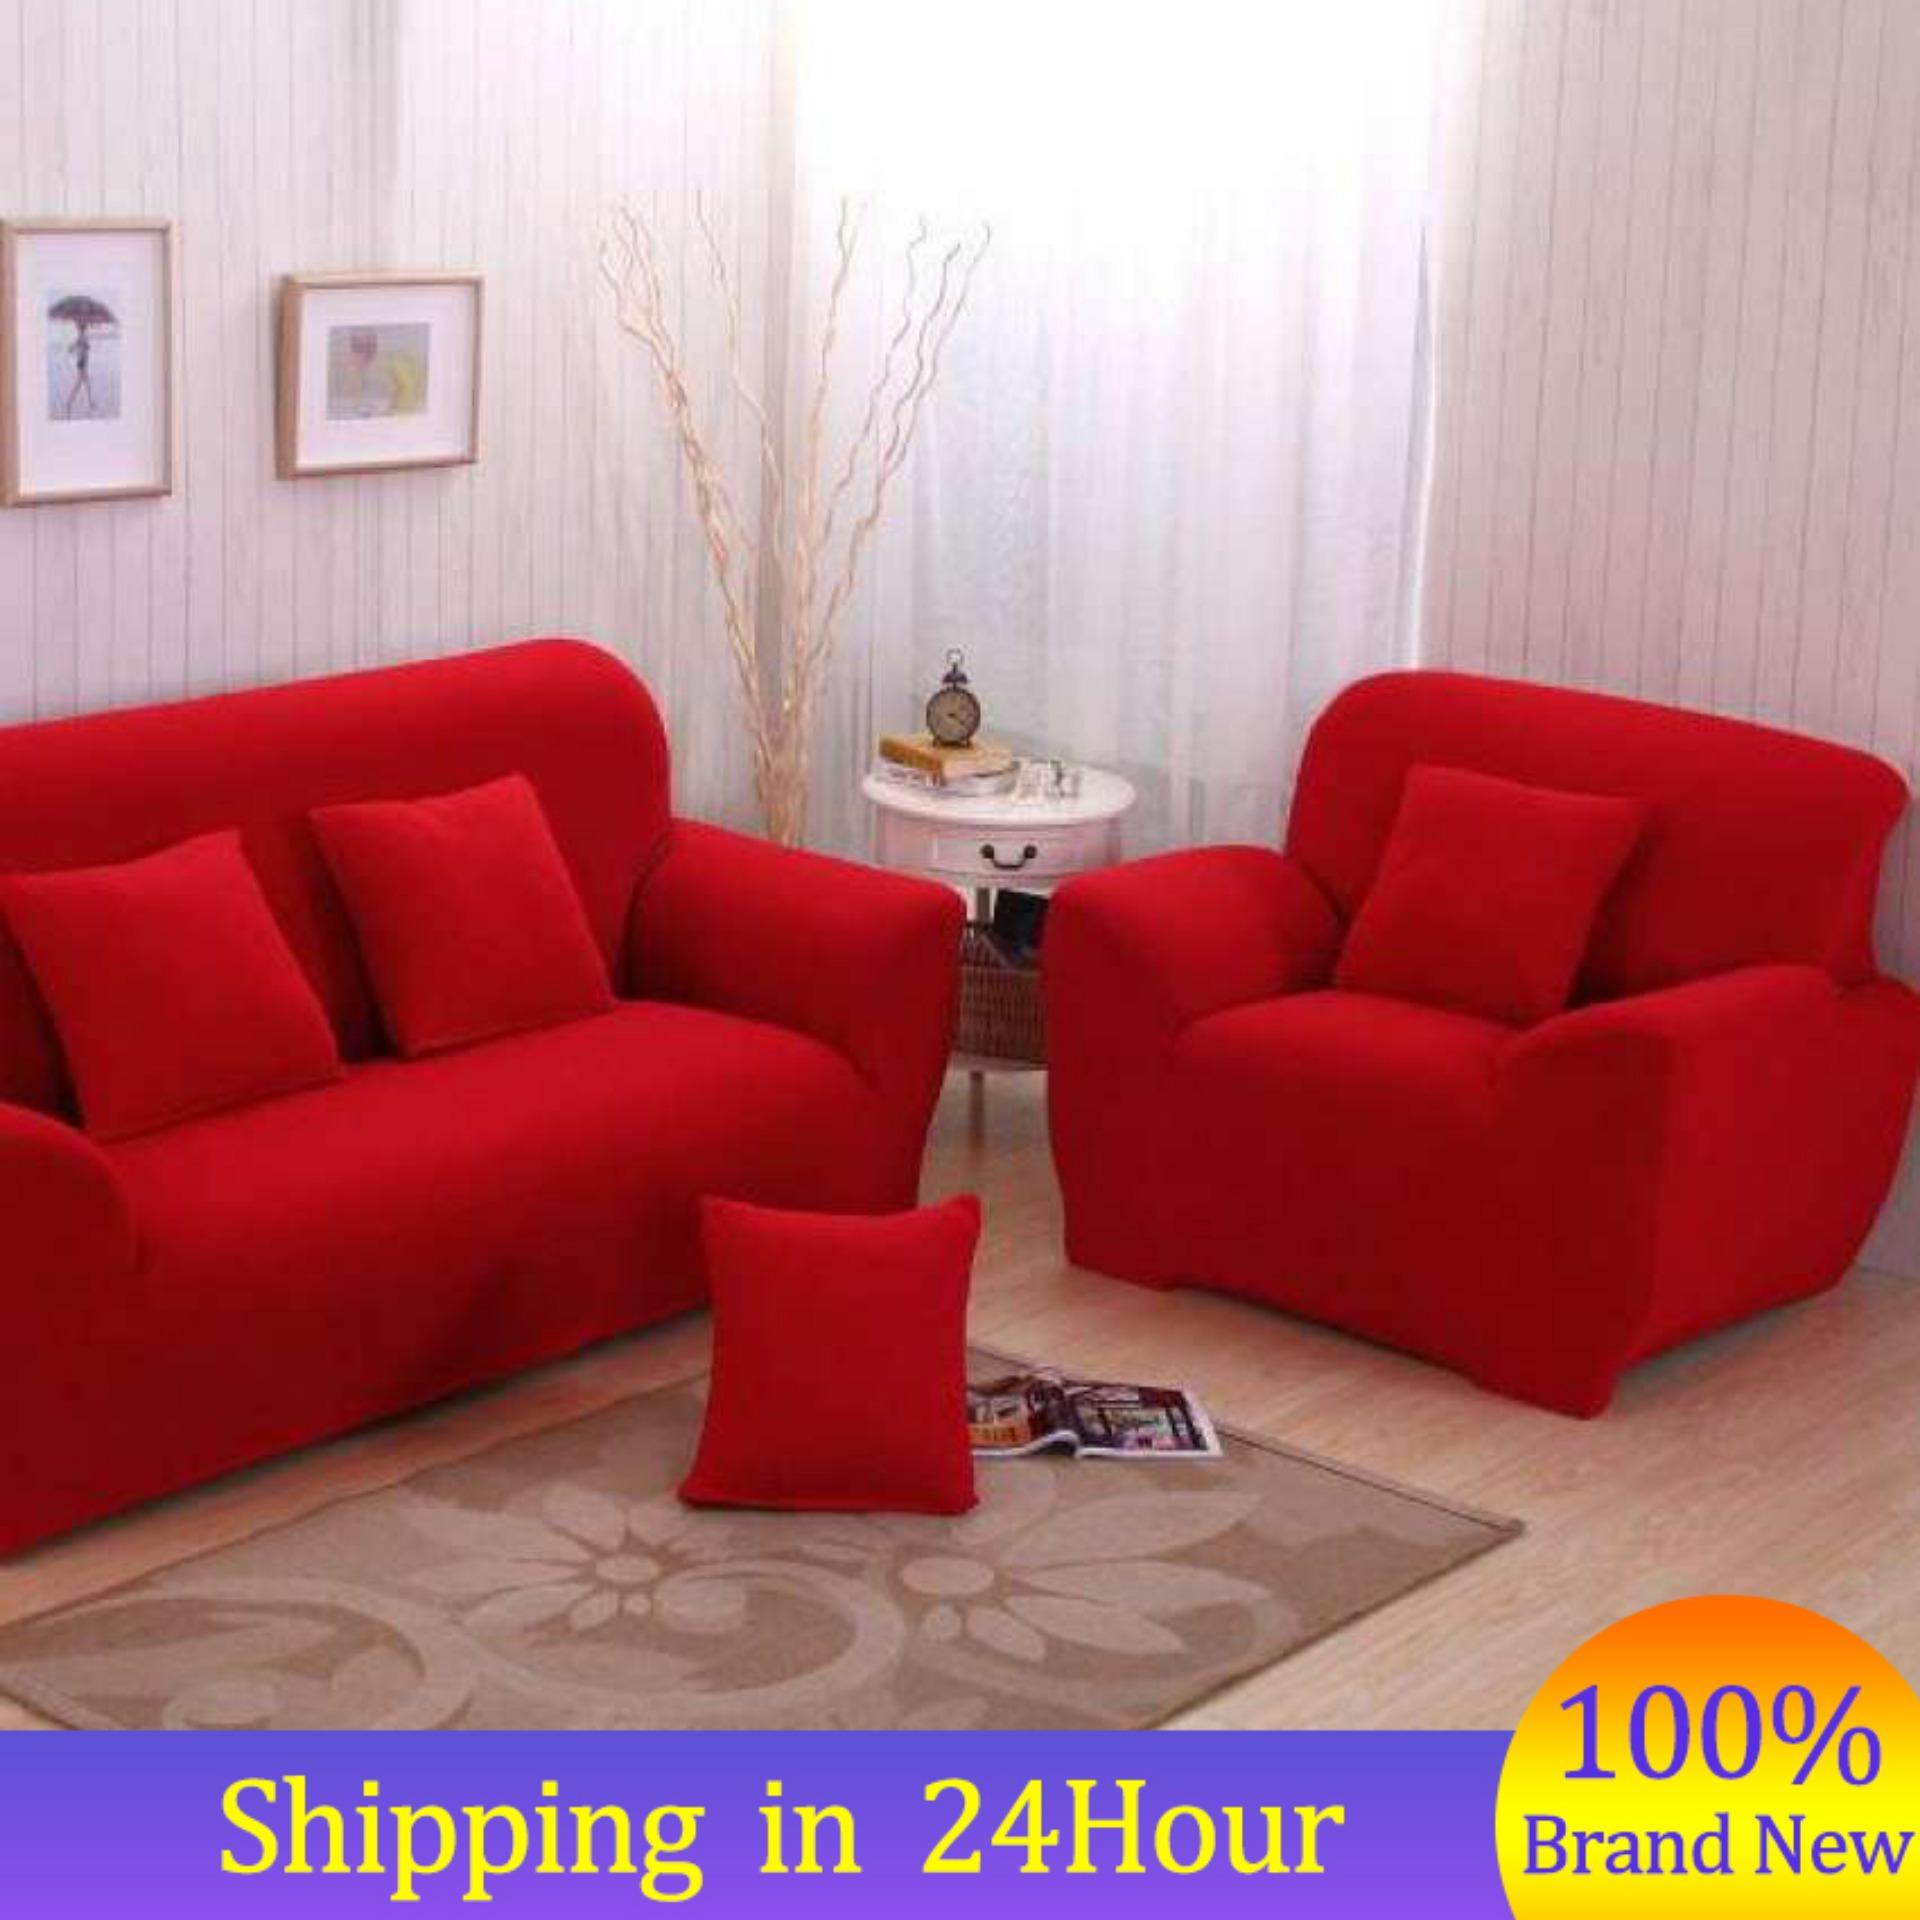 Slipcovers for sale - Slipcover prices, nds & review in ... on